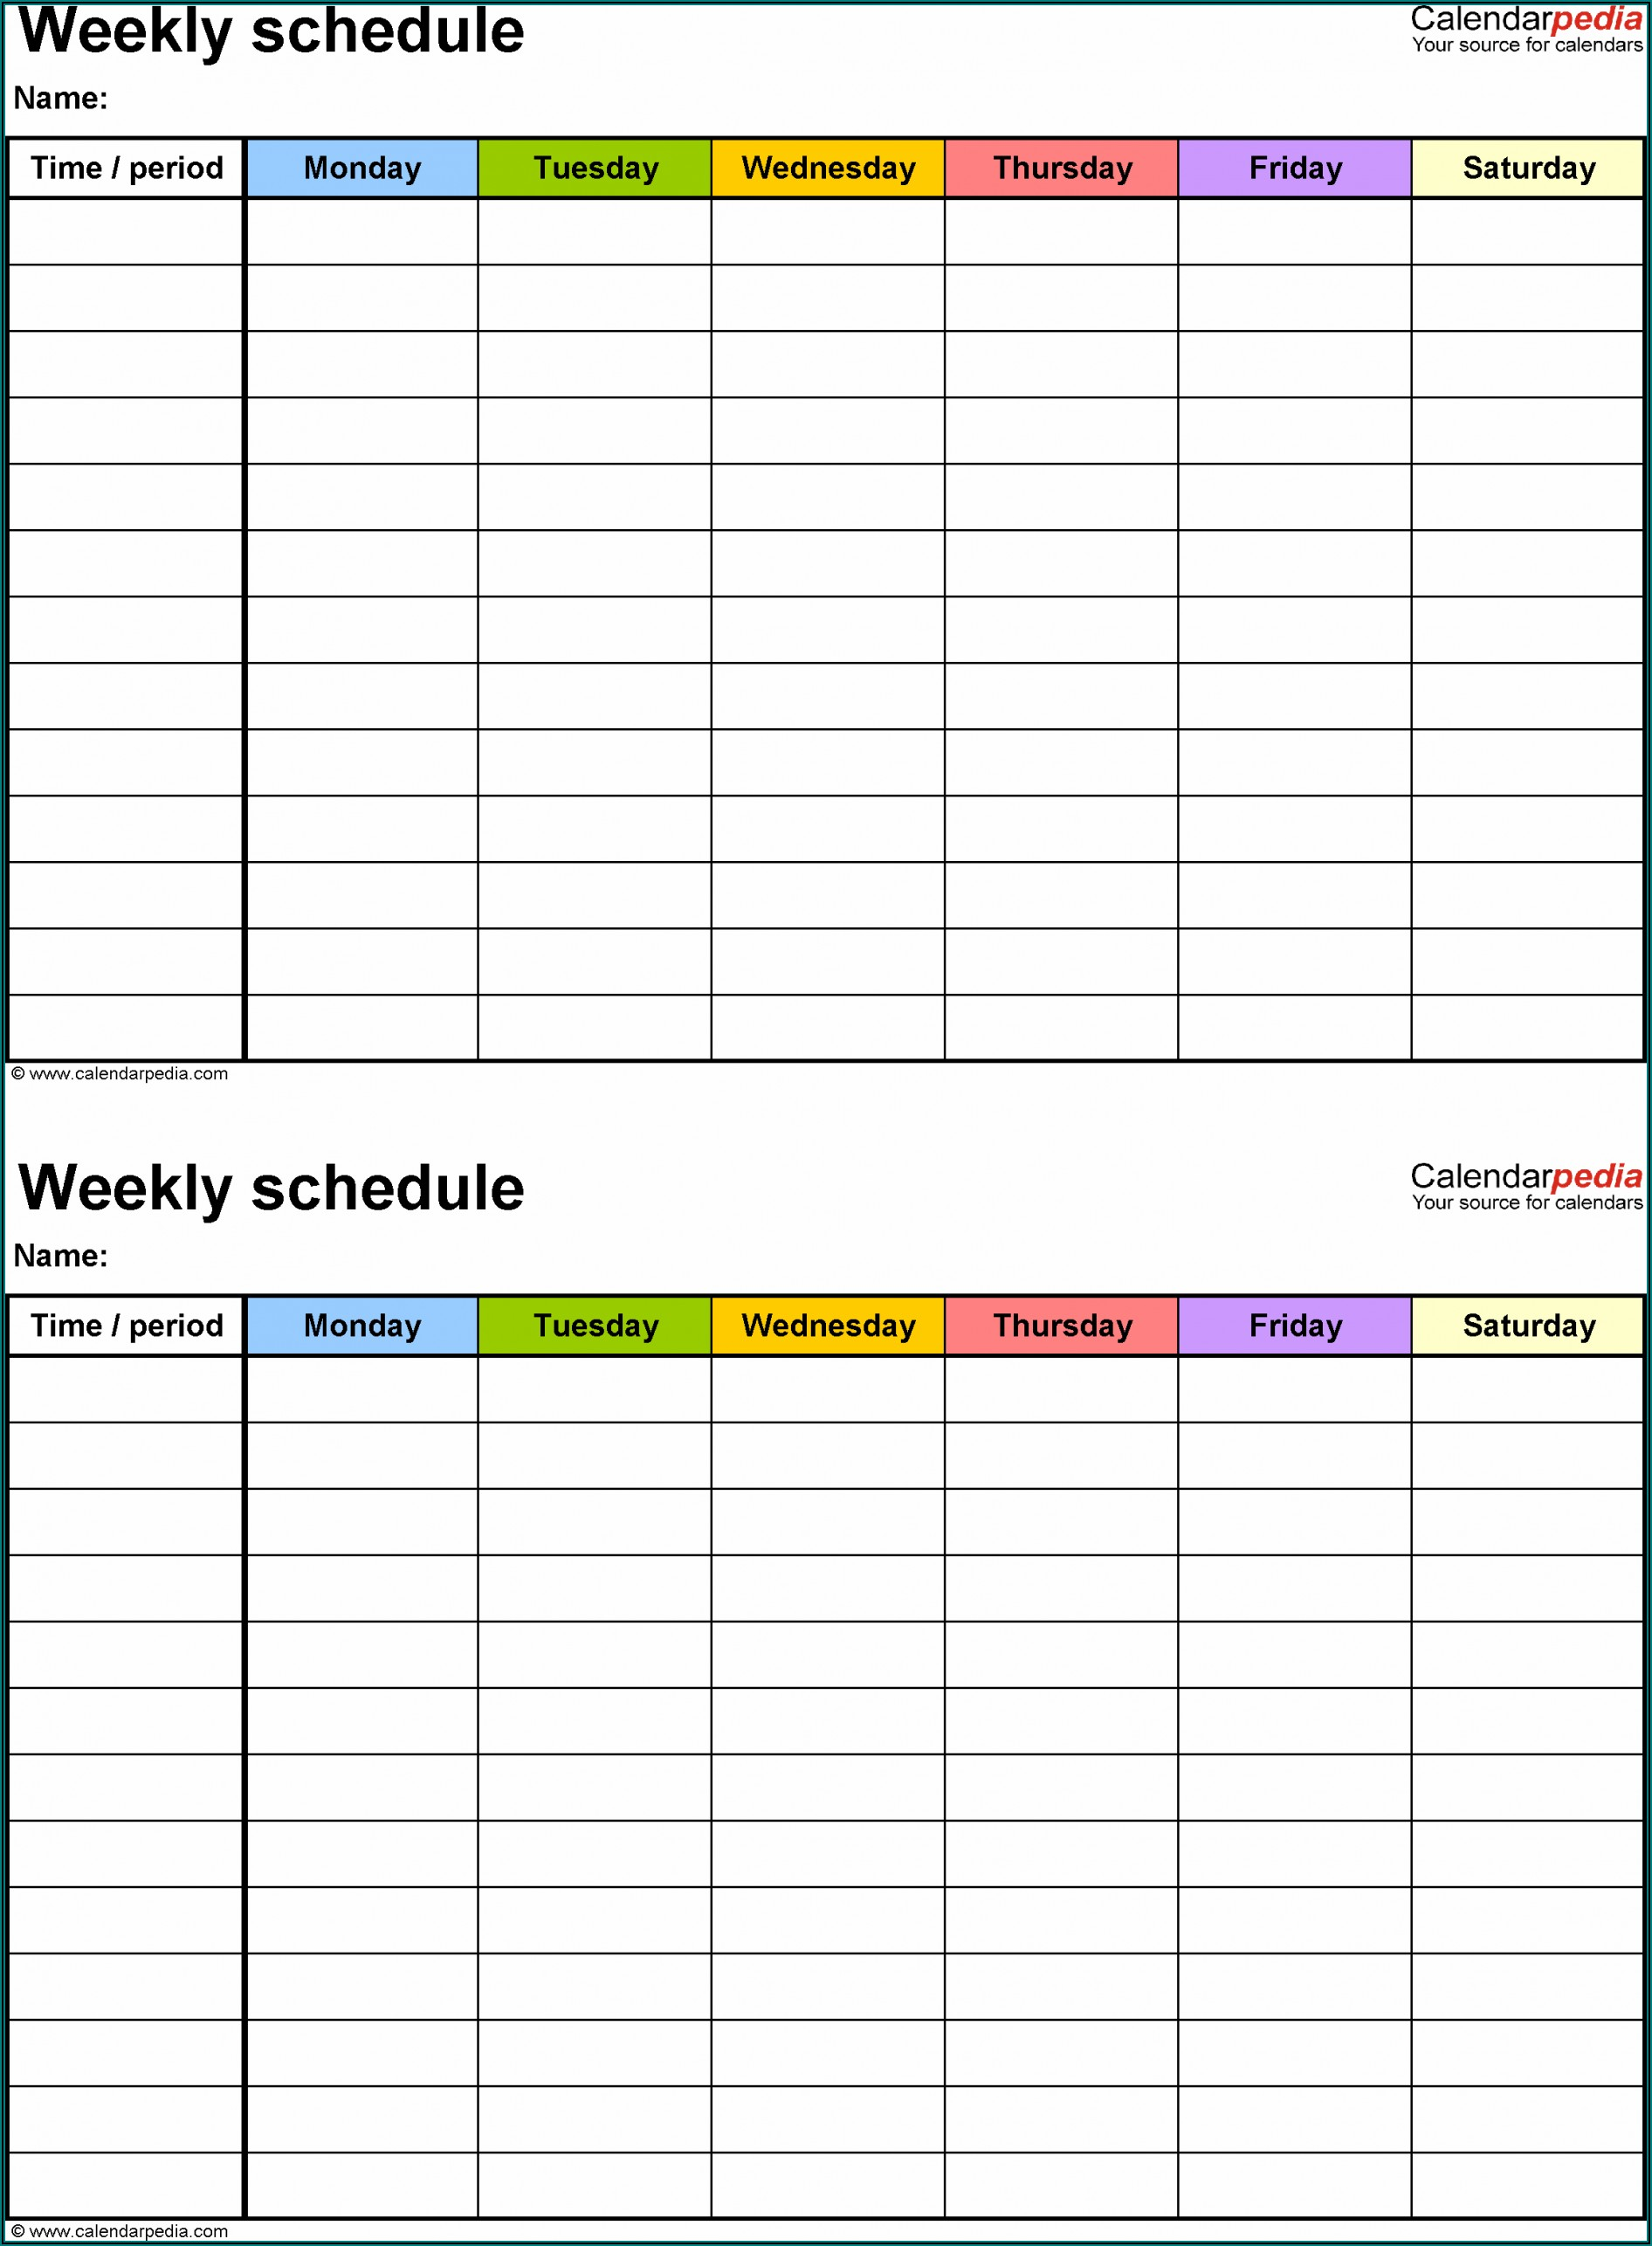 Monthly Schedule Calendar Template Excel